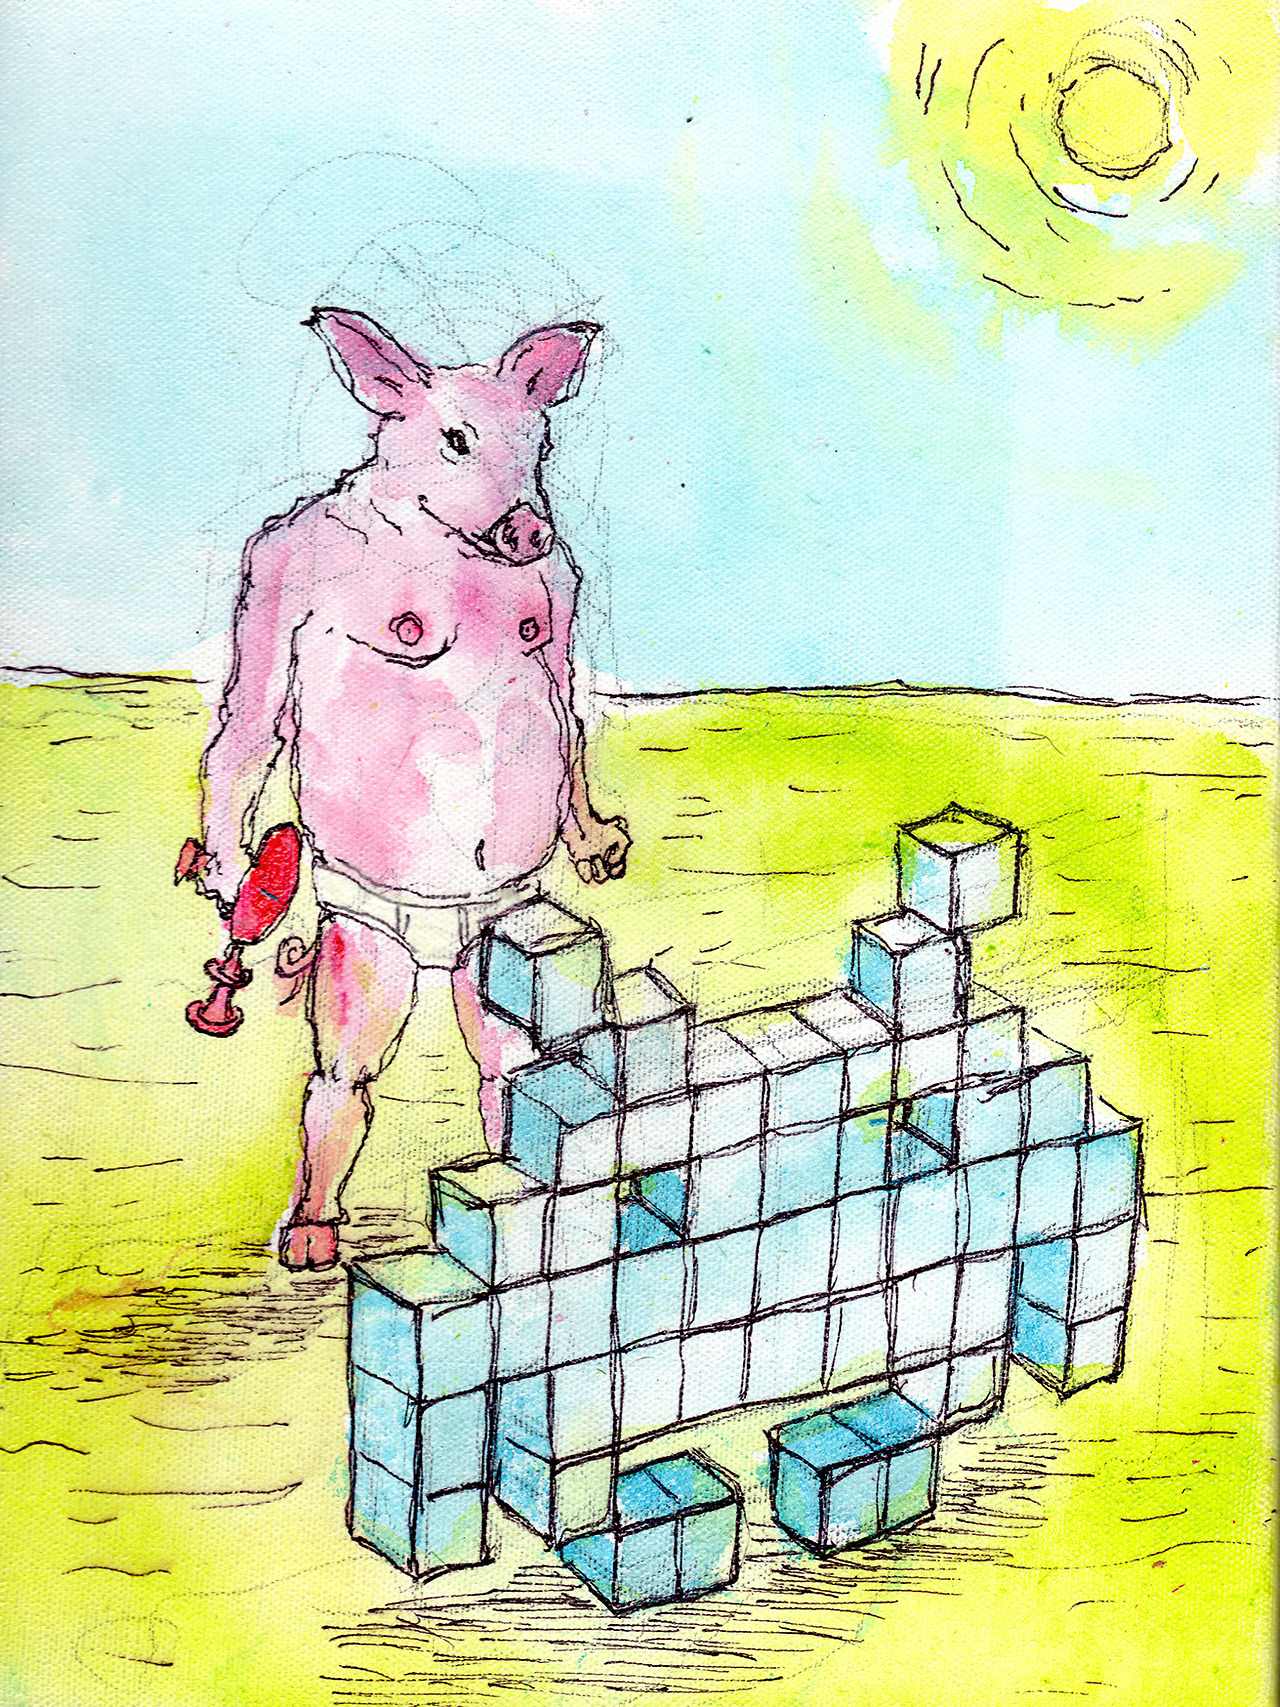 "4/23/13 -  A Porcine Predicament.    This made more sense in my head.   9"" x12"" Acrylic paint, sharpie, pencil, polyurethane on canvas.   Available to purchase here:  http://taylorwinder.bigcartel.com    Prints available here:  http://society6.com/taylorwinder"